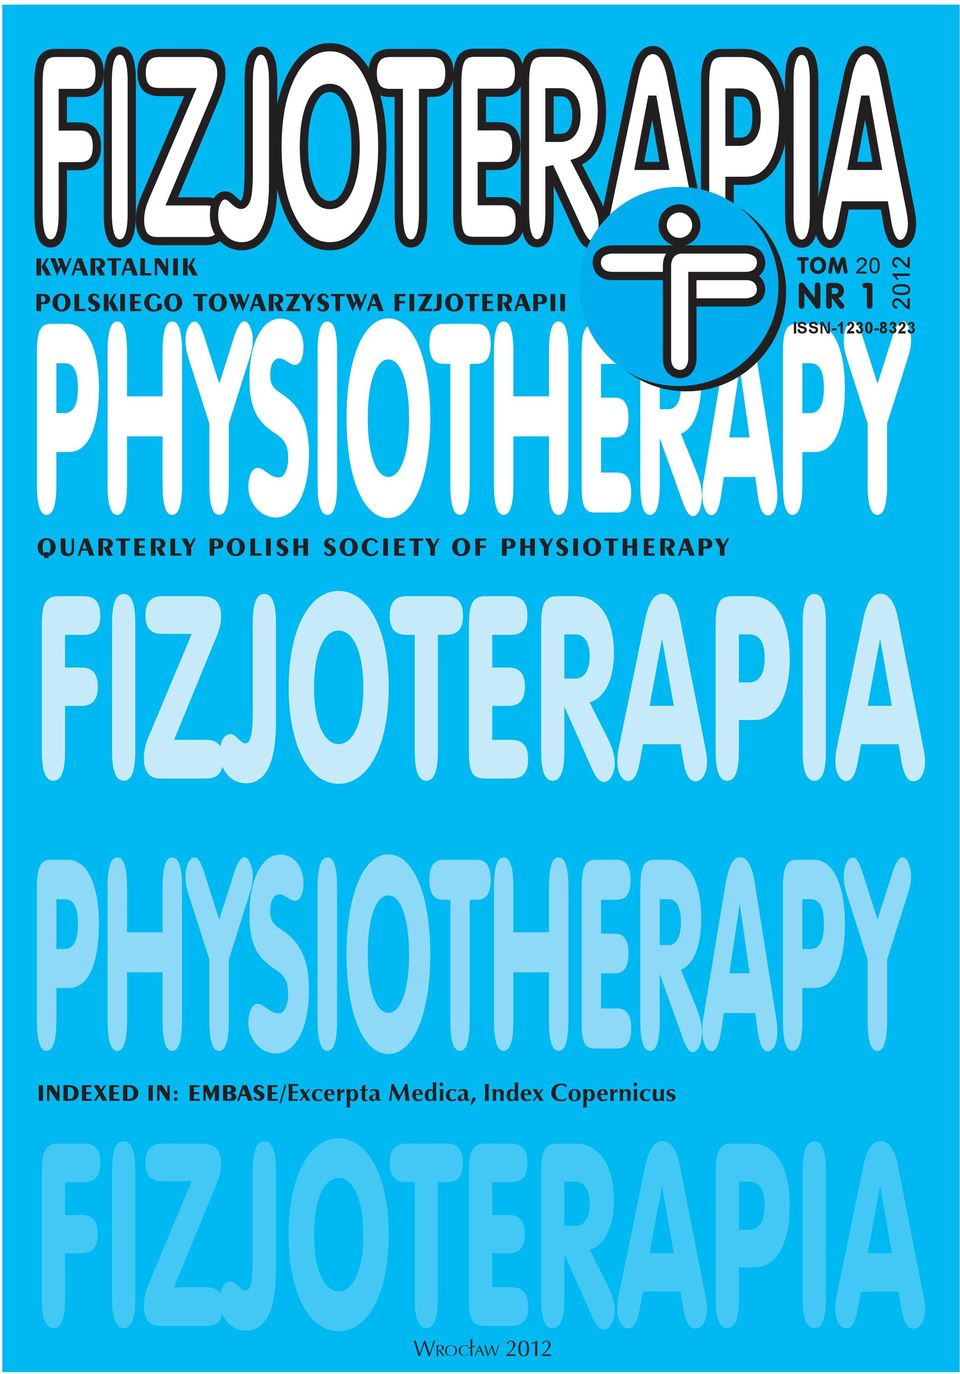 POLISH SOCIETY OF PHYSIOTHERAPY INDEXED IN: